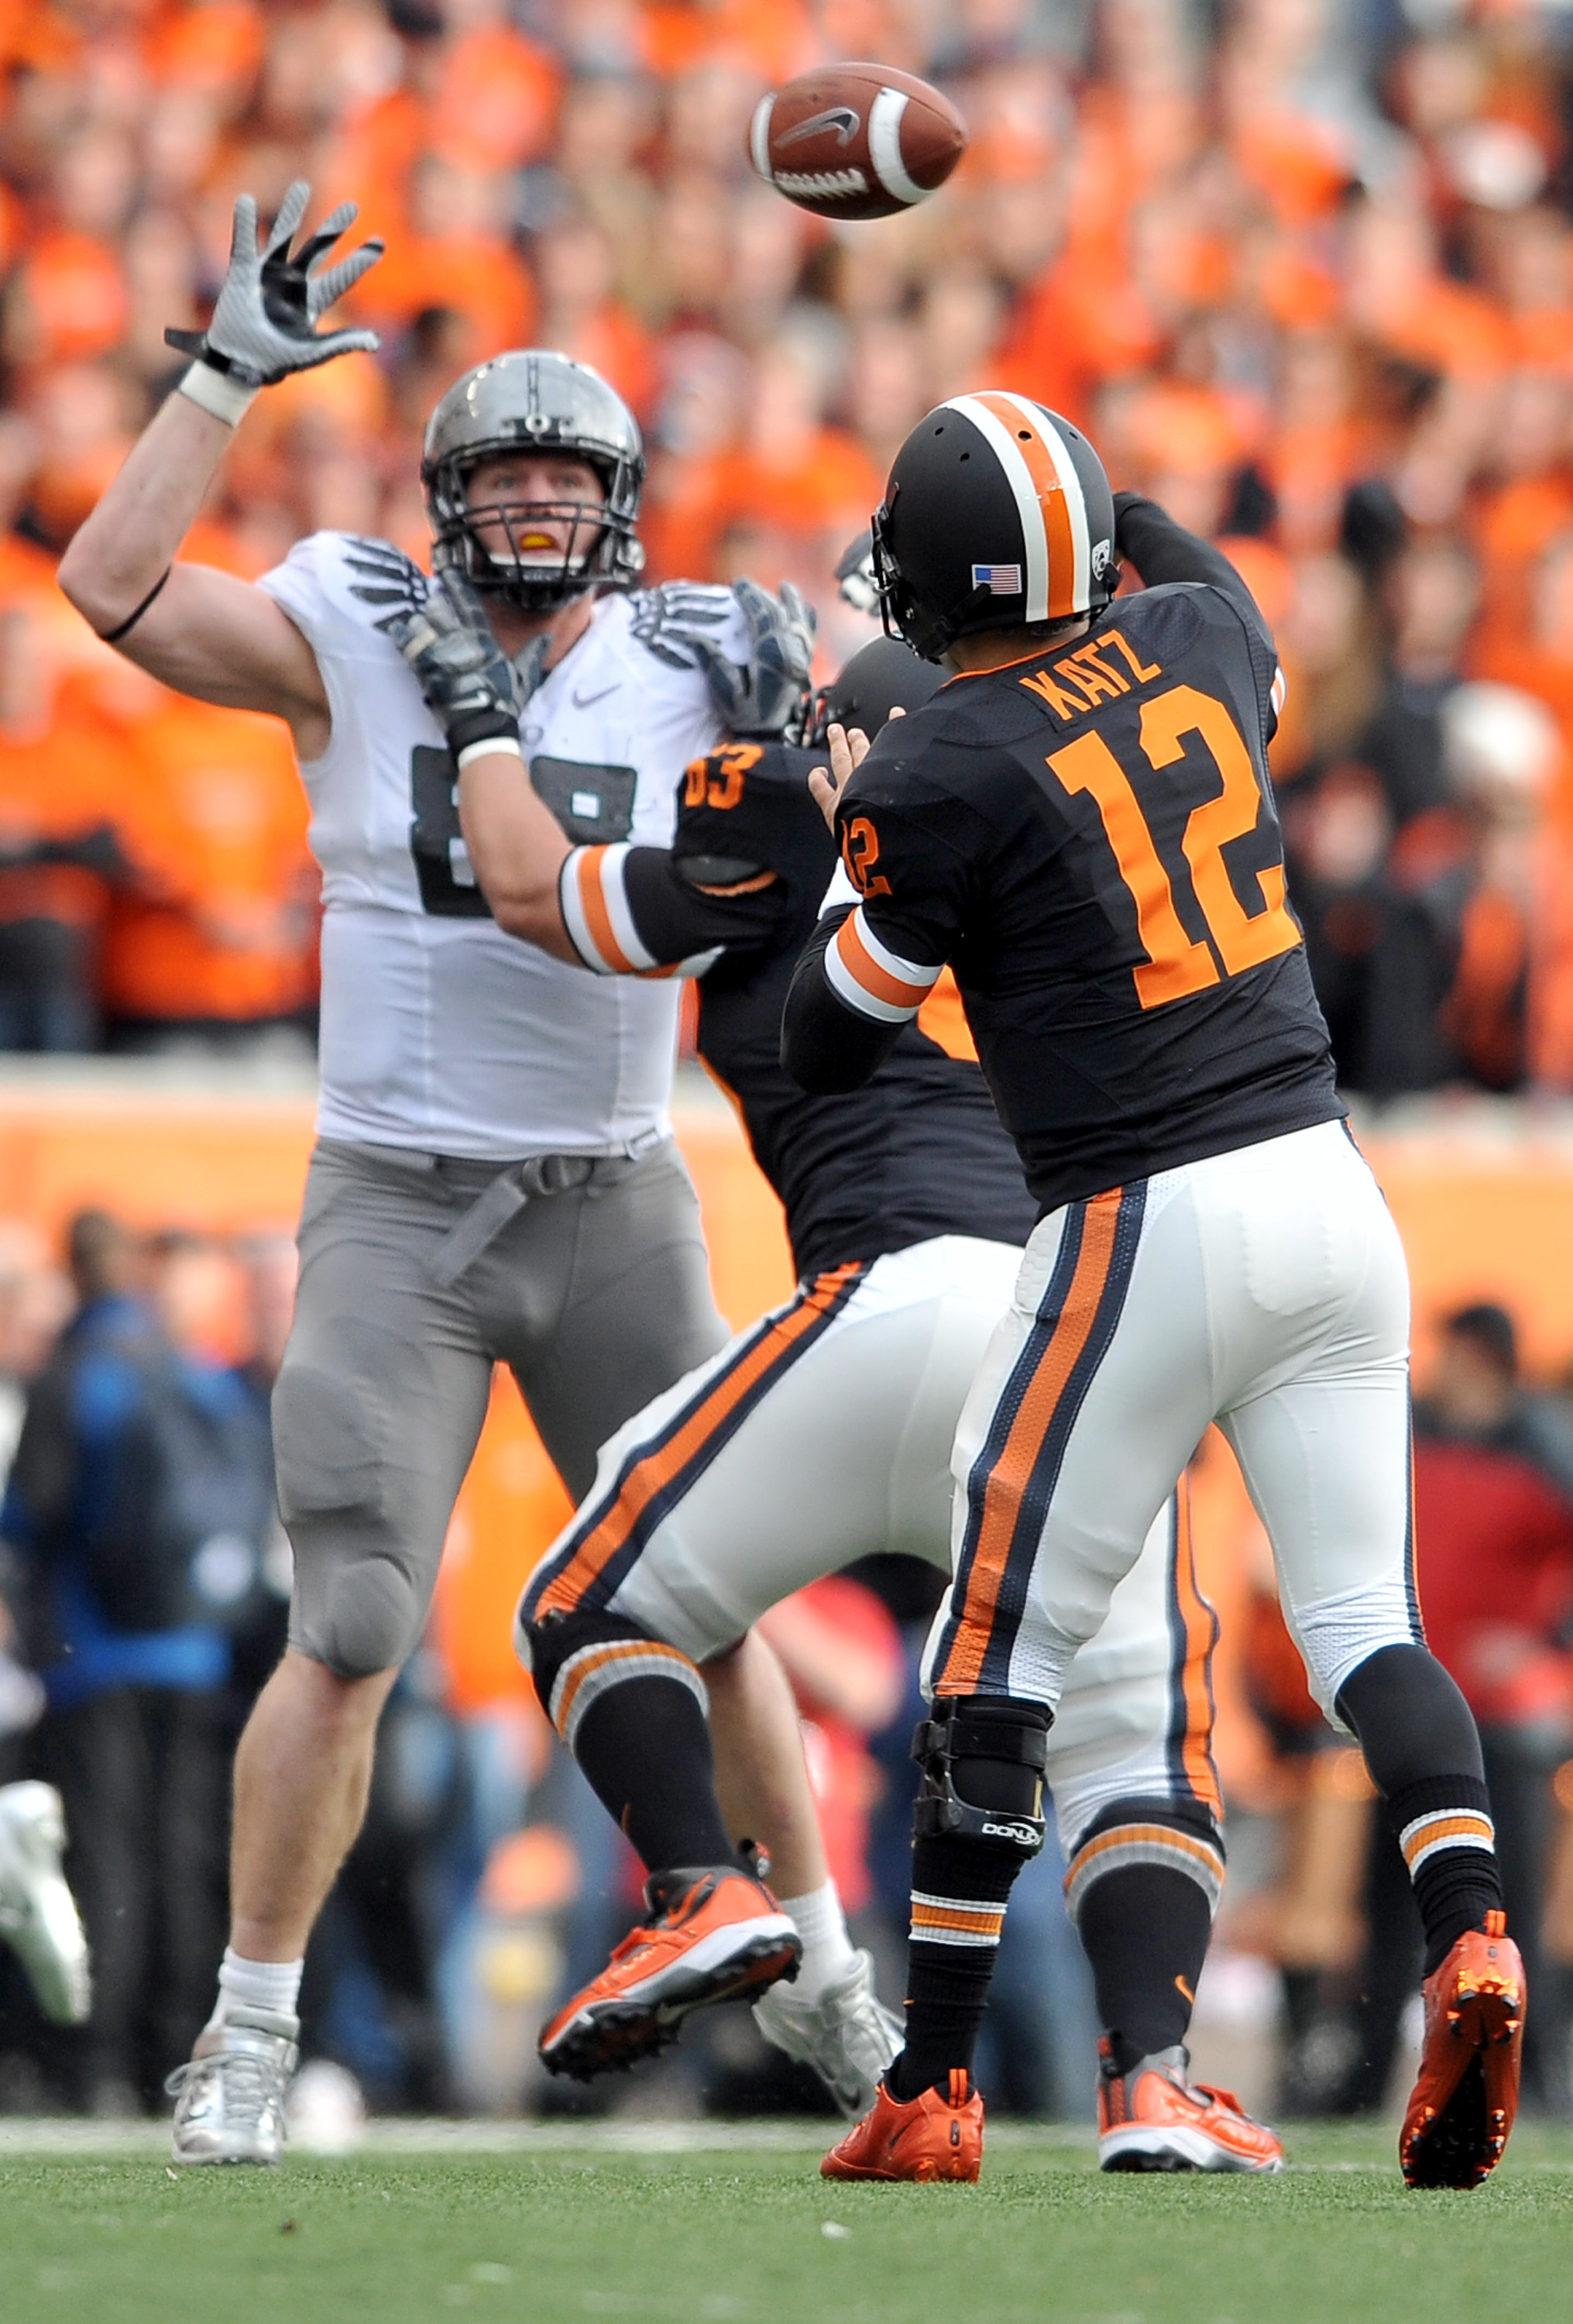 CORVALLIS, OR - DECEMBER 4: Quarterback Ryan Katz #12 of the Oregon State Beavers tries to pass the ball over the outstretched arm of Brandon Bair #88 of the Oregon Ducks in the second quarter the game at Reser Stadium on December 4, 2010 in Corvallis, Or